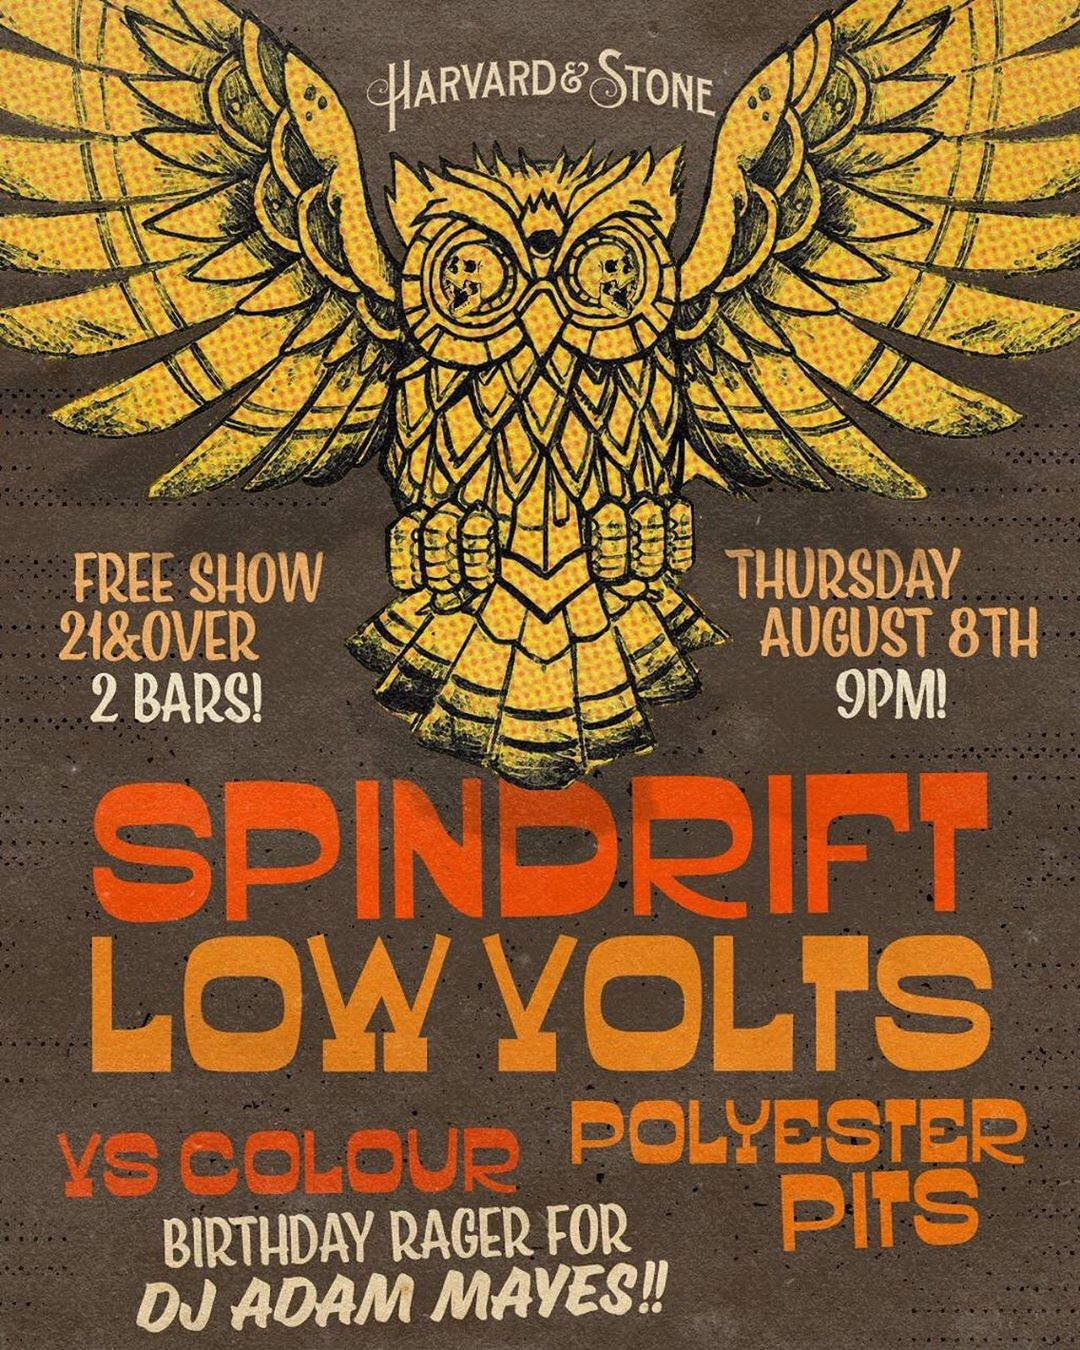 Thr in LA 08.07.19 @harvardandstone @lowvolts @vscolour @polyesterpits @bobby_bones23 joins us! @dj_del_scorcho #bdayblowout Pick up new #songsfromtheancientage #bloodandwhiskey #limitededition #onvinyl @rebeccaddavidson @jz323 @trashbaghashtag @spindriftwest @spindrift @littlecloudrecords @alternativetentacles @teepeerecords @divinedroidrecords @xemu_records_official